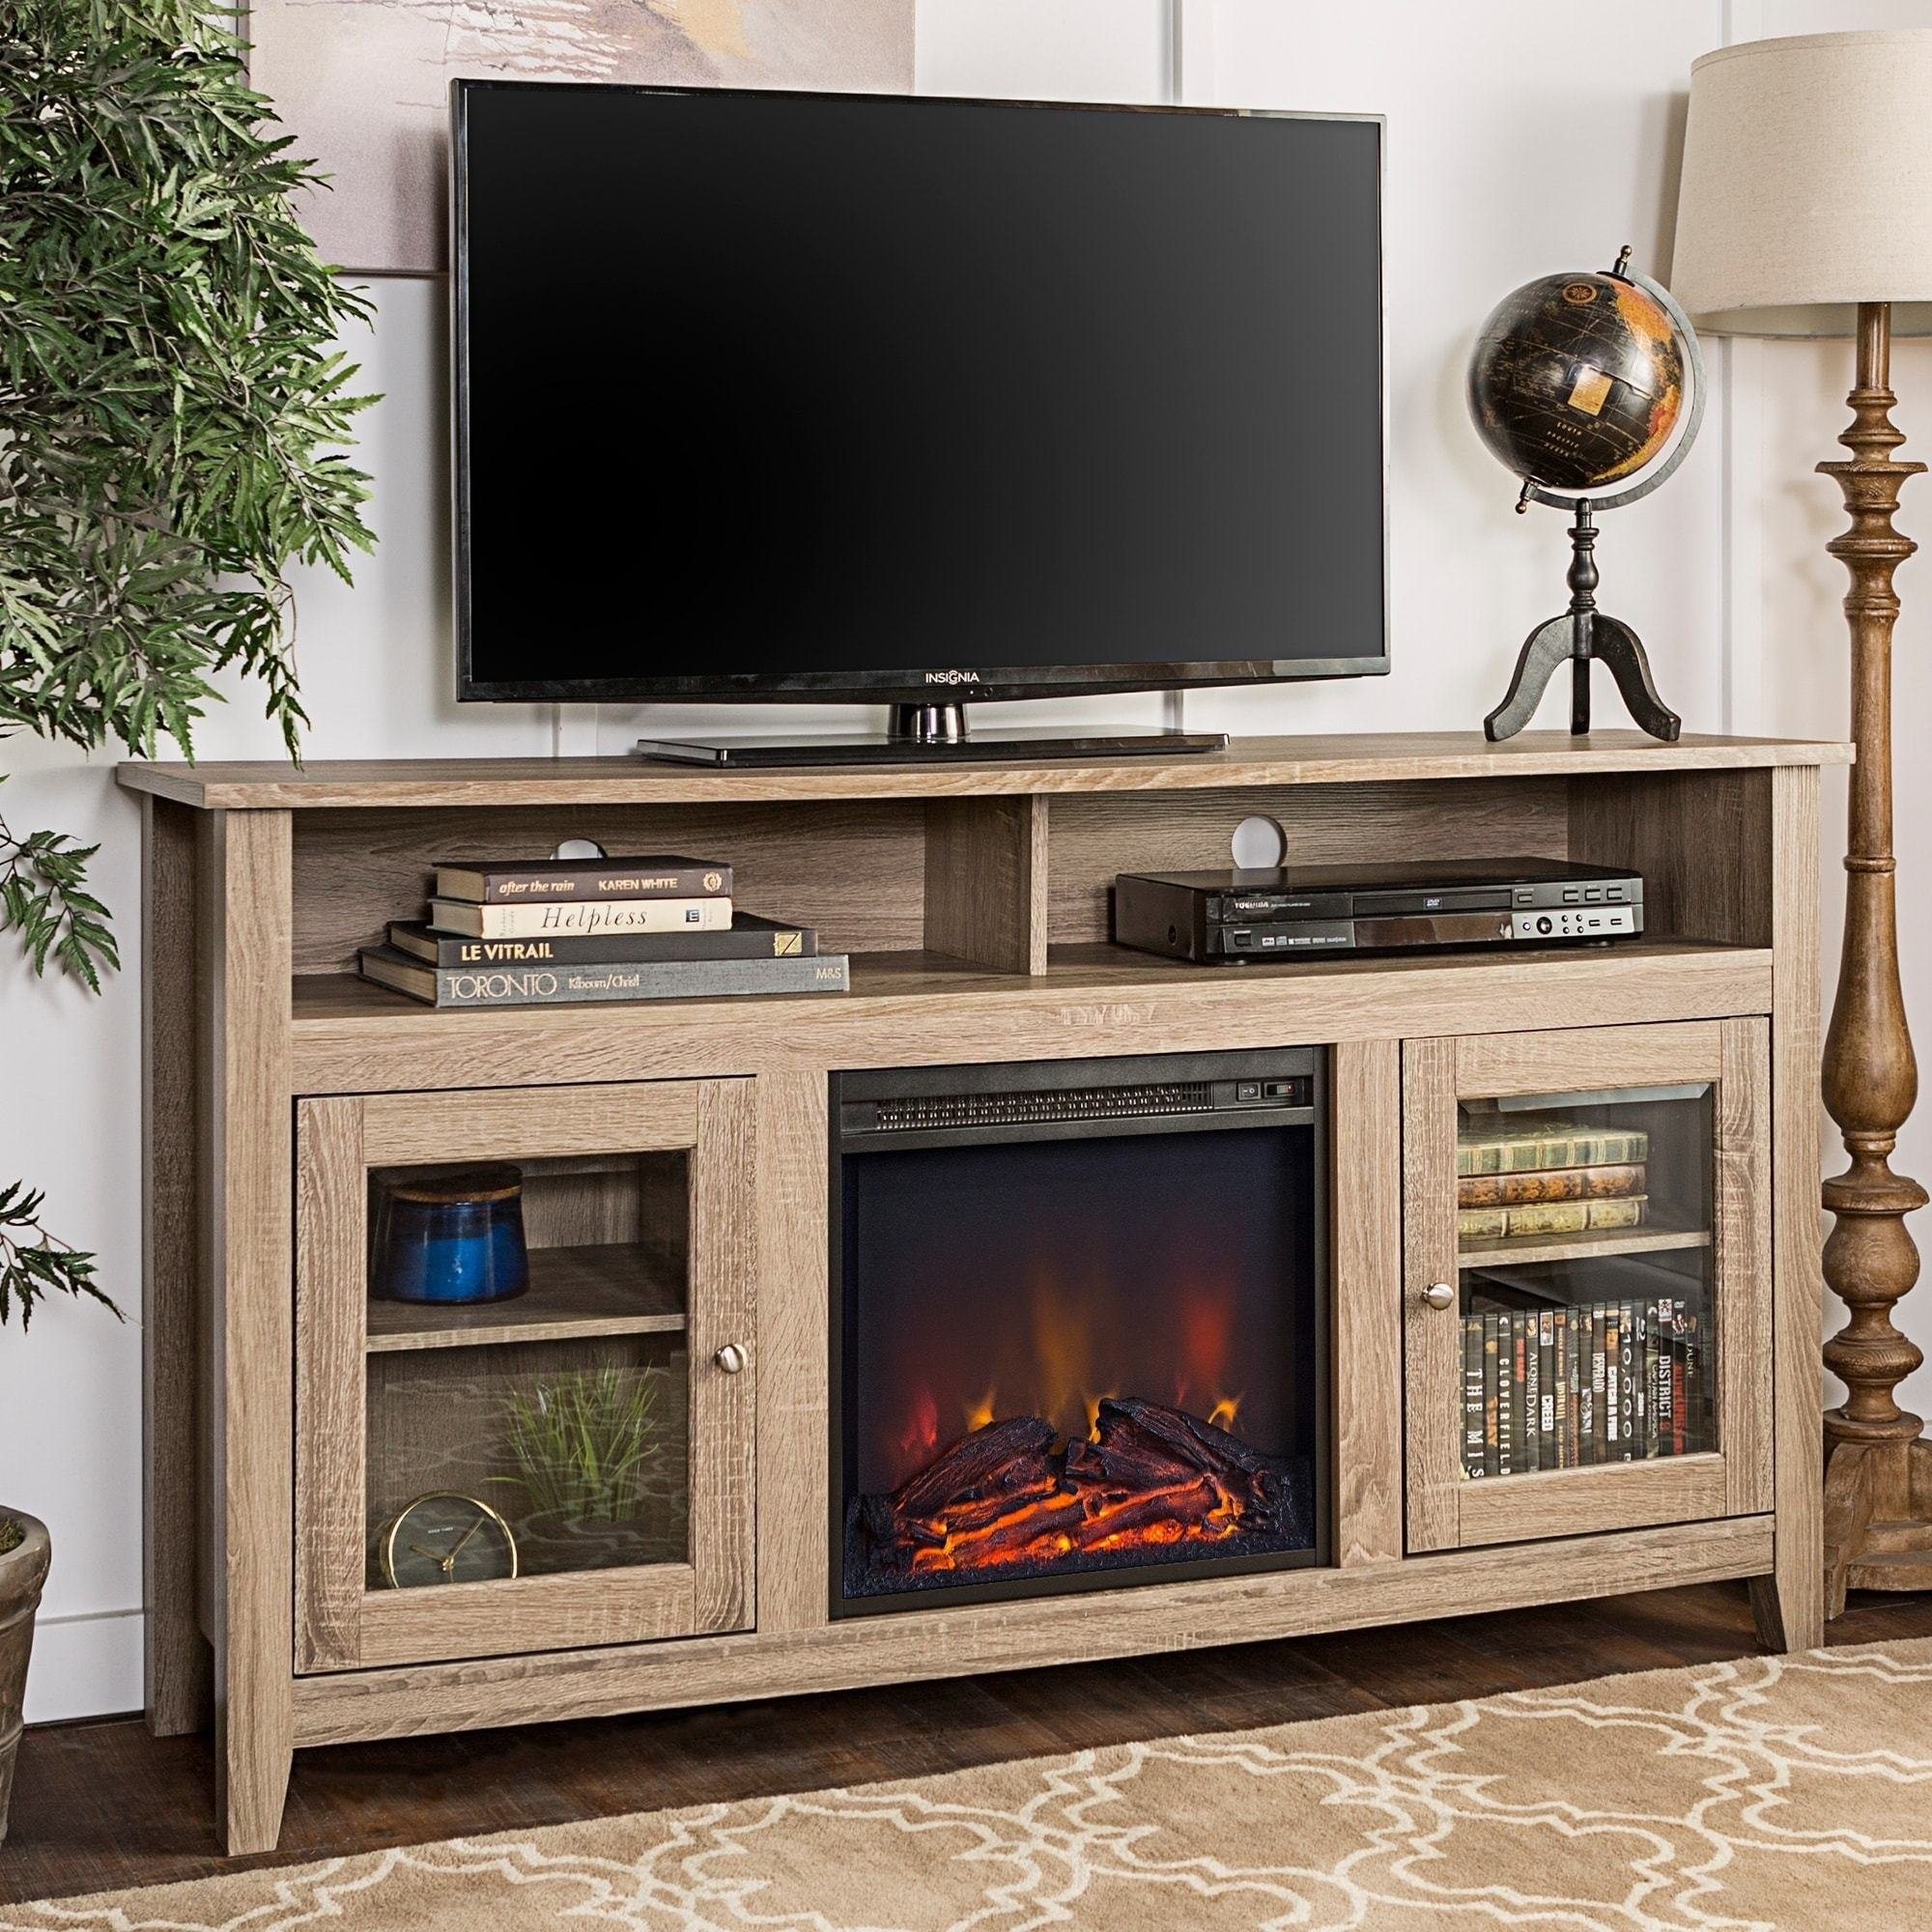 Best 58 Inch Tv Stand For Flat Screens With Fireplace Electric With Pictures